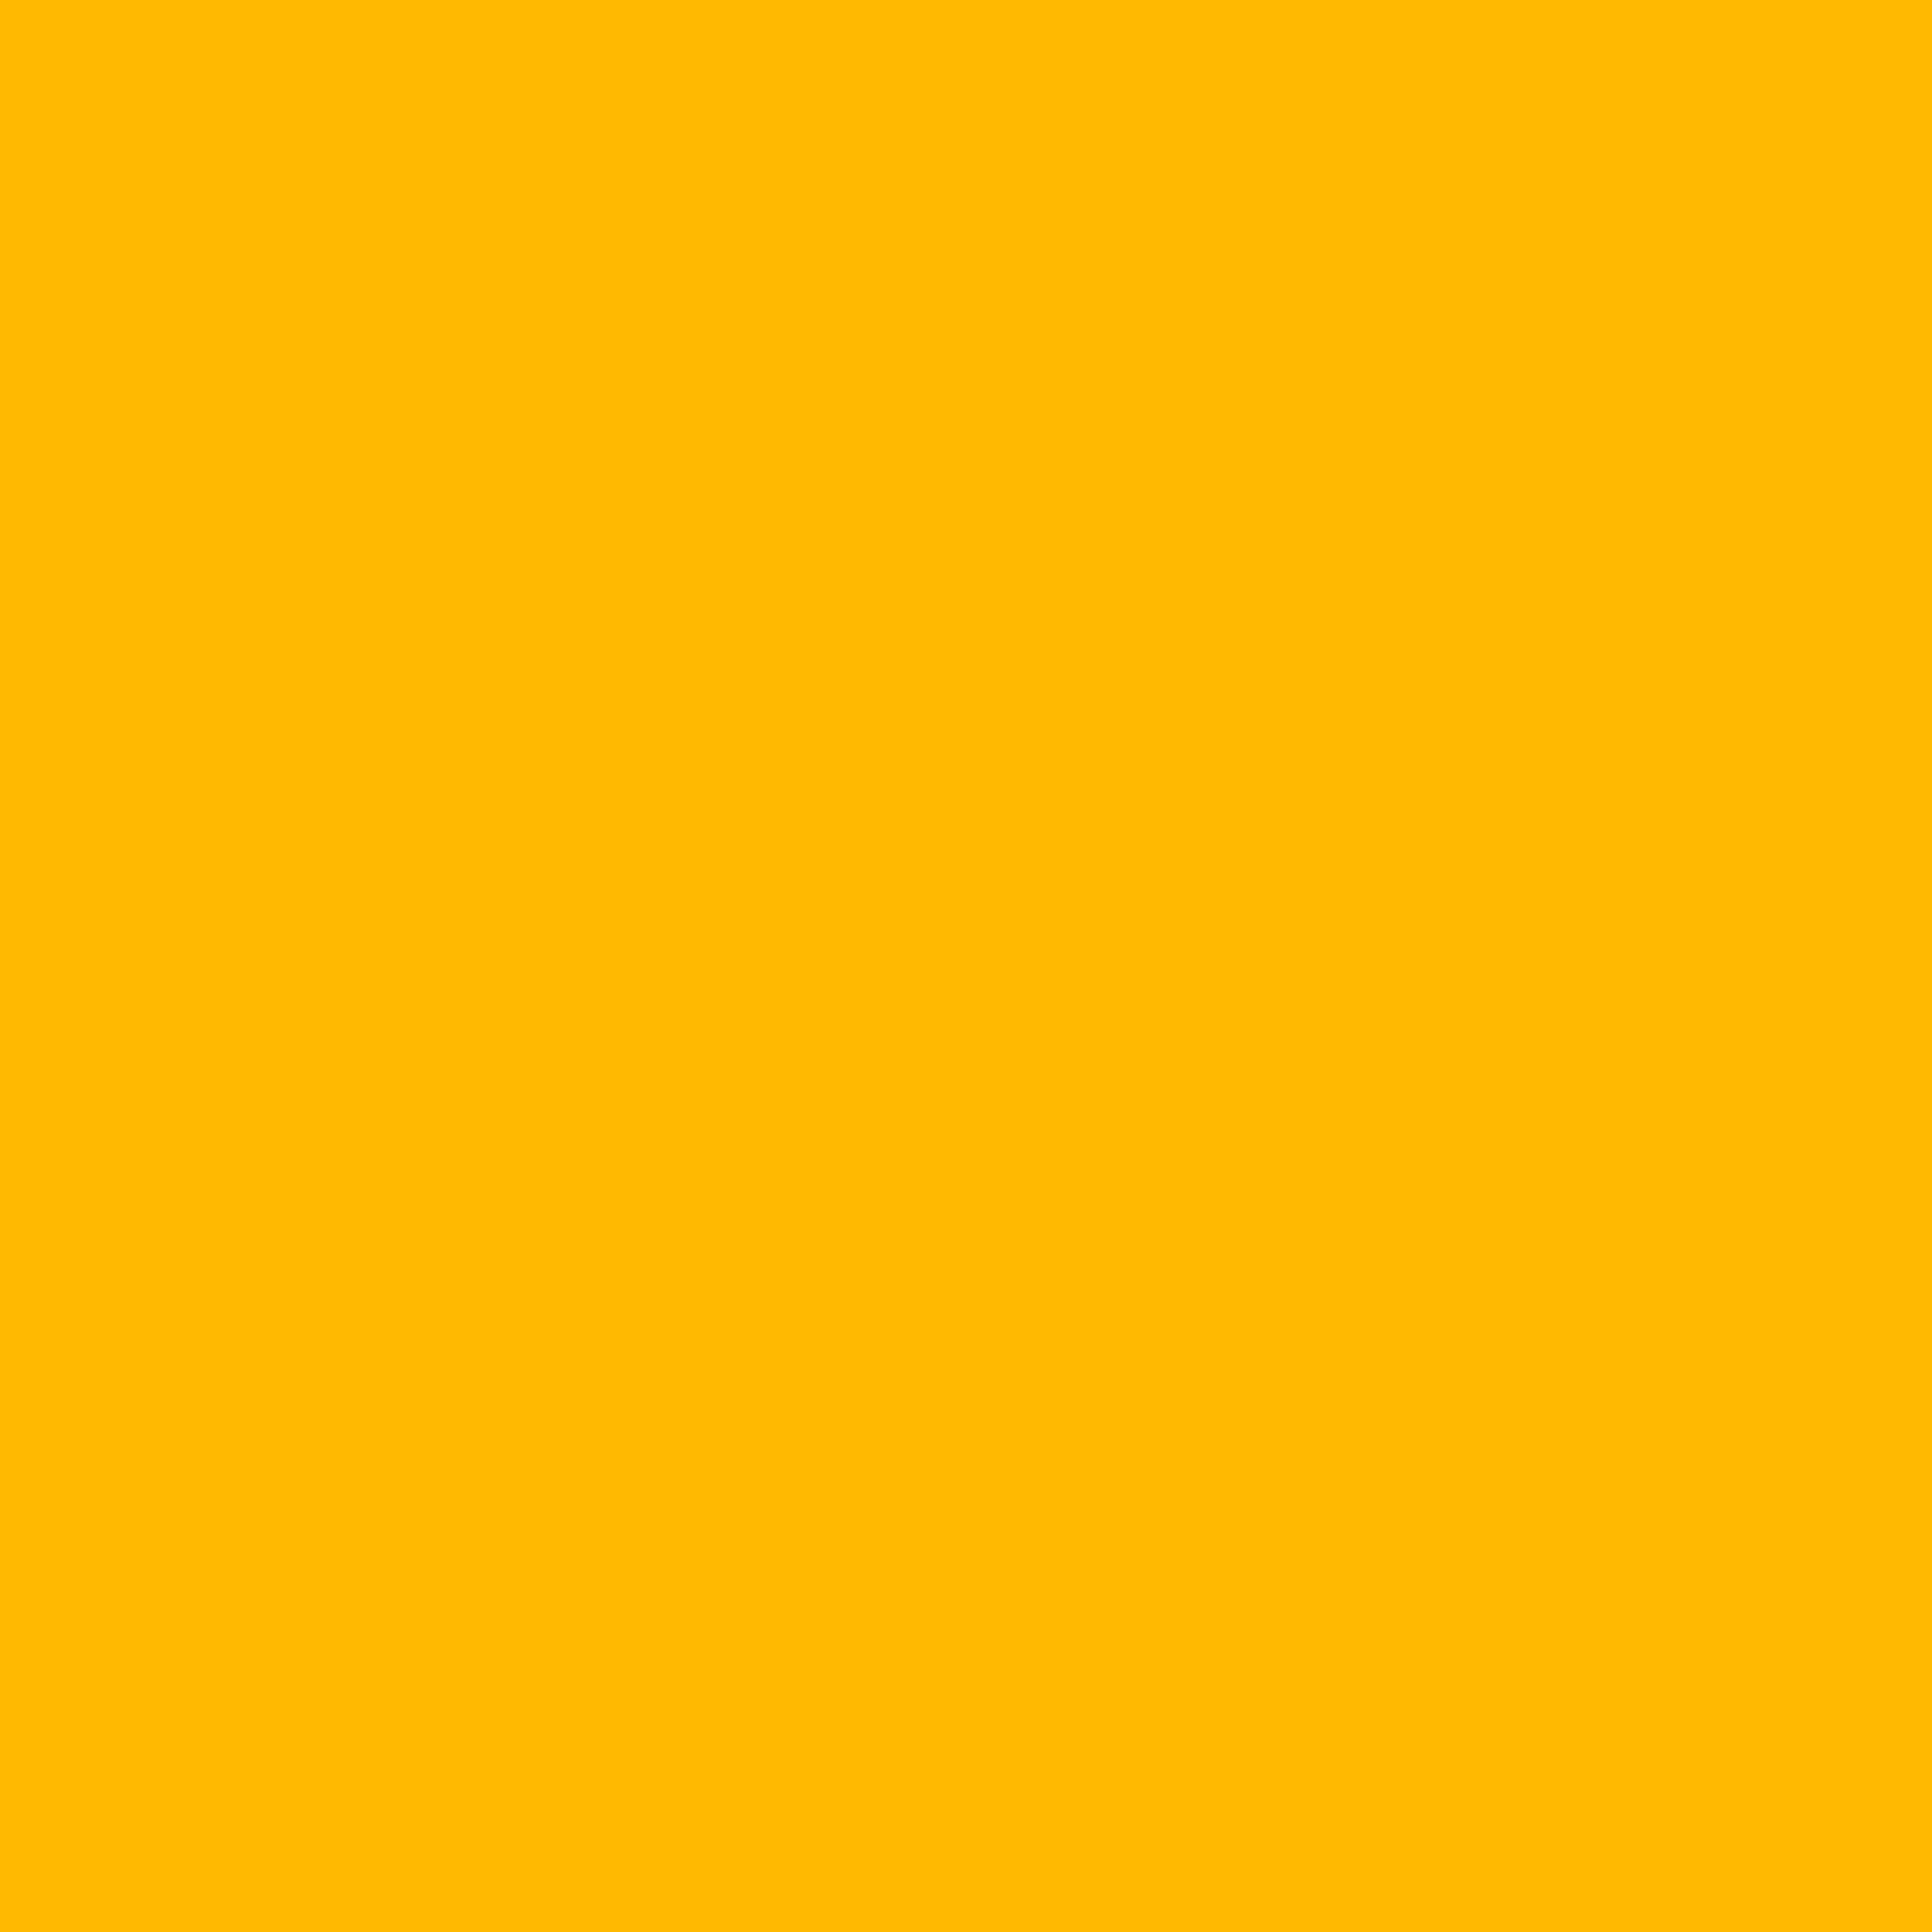 2048x2048 Selective Yellow Solid Color Background